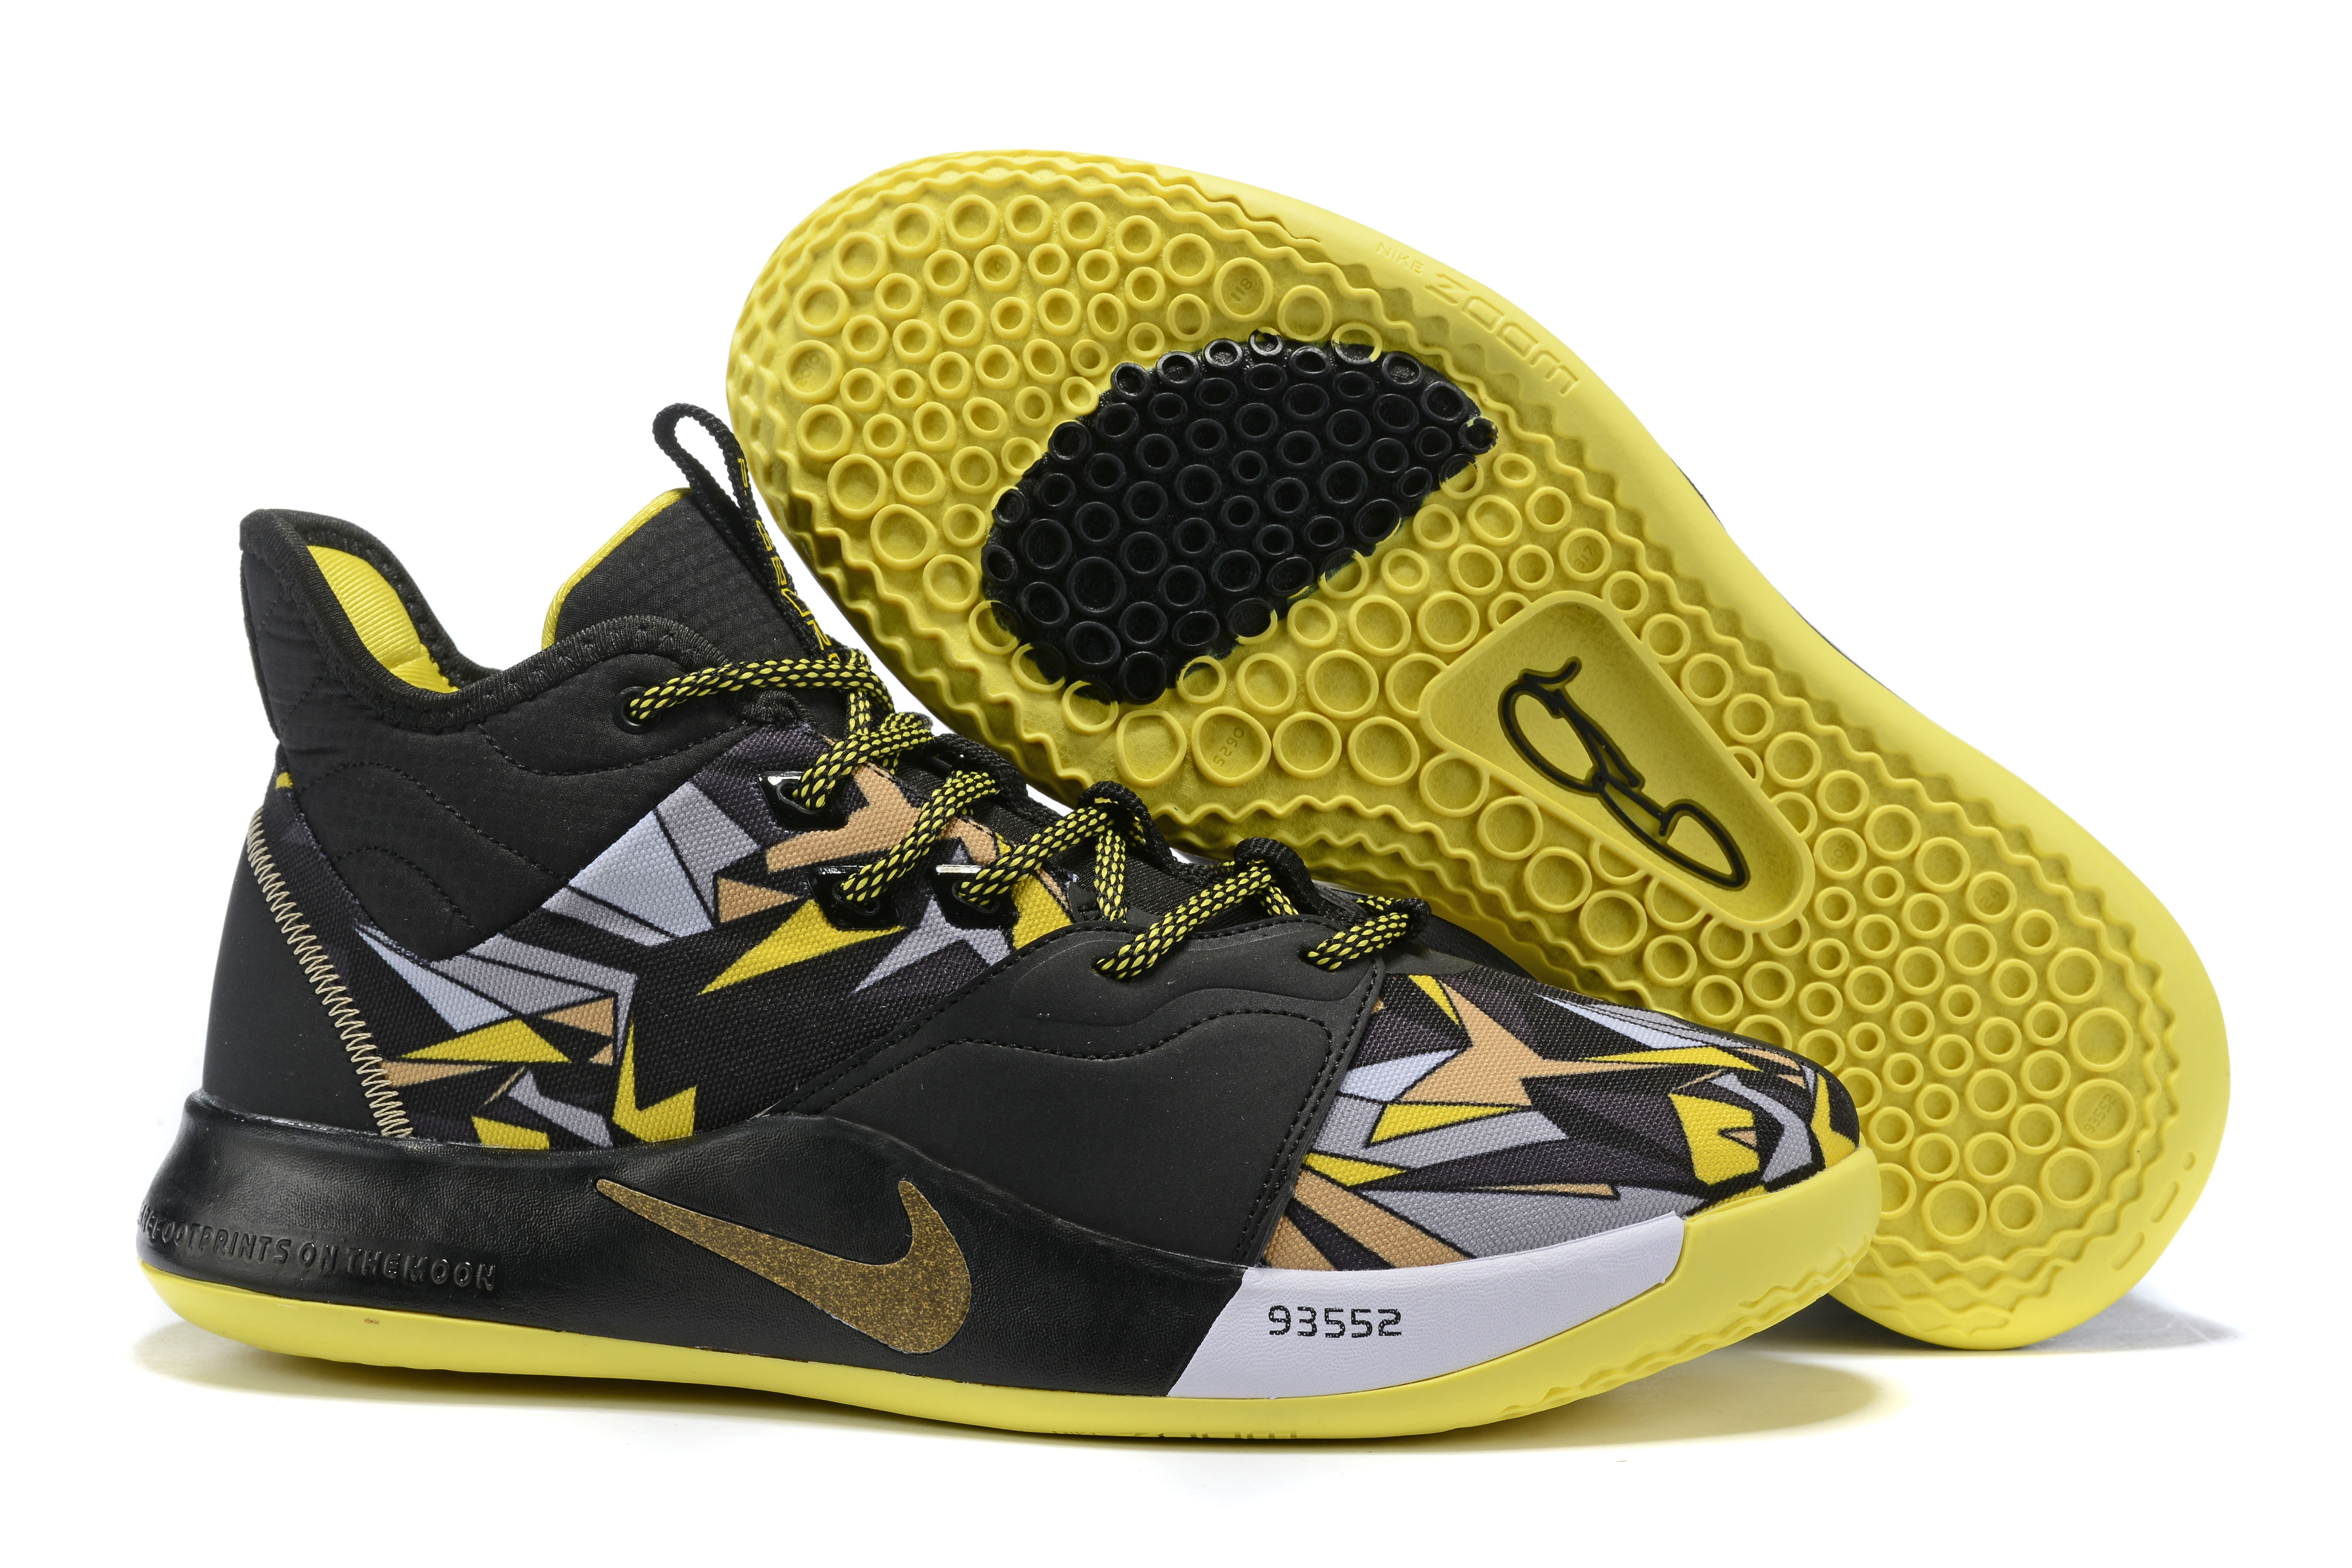 Nike PG 3 Mamba Mentality Black Yellow Shoes